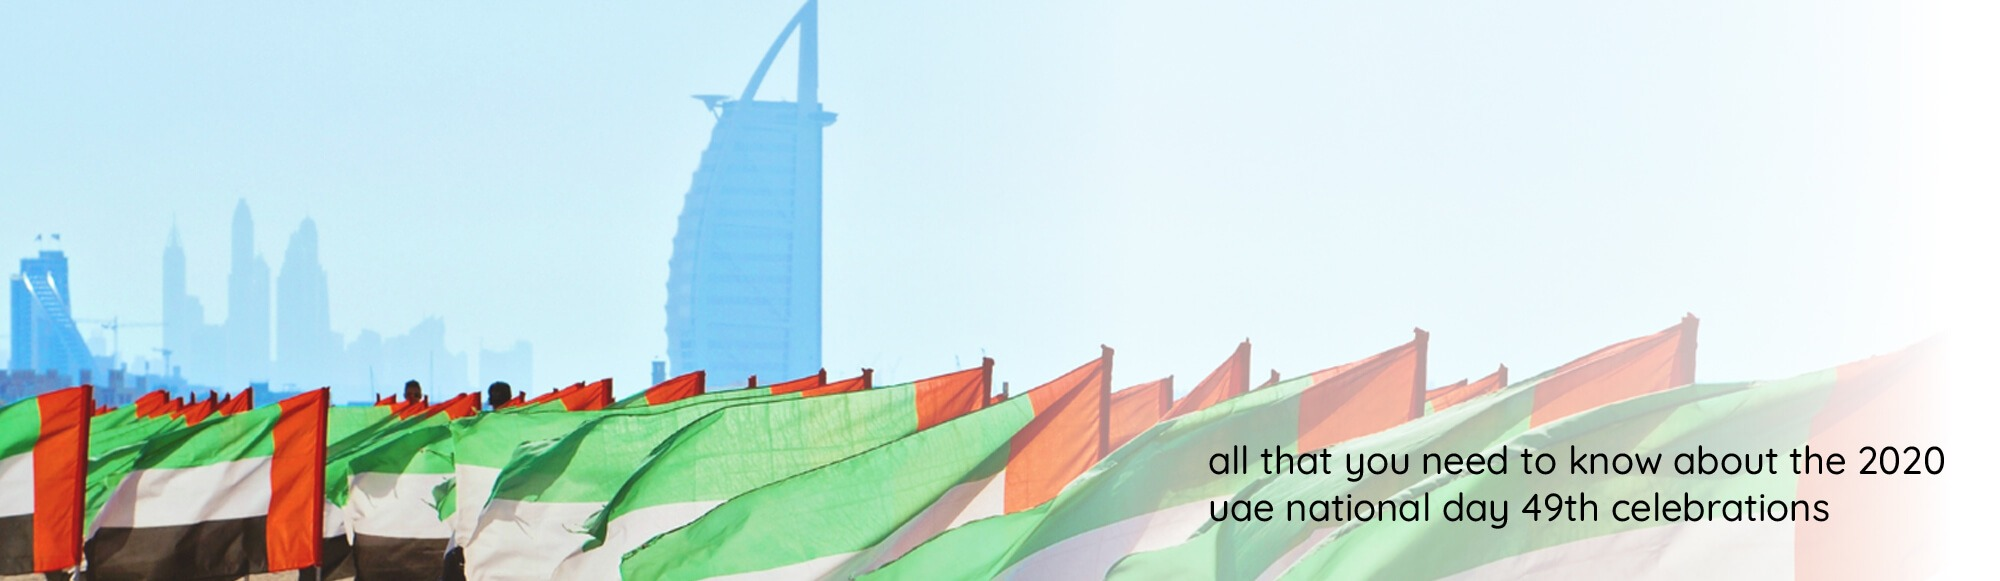 All You Need to Know About the 49th UAE National Day Celebrations (1)